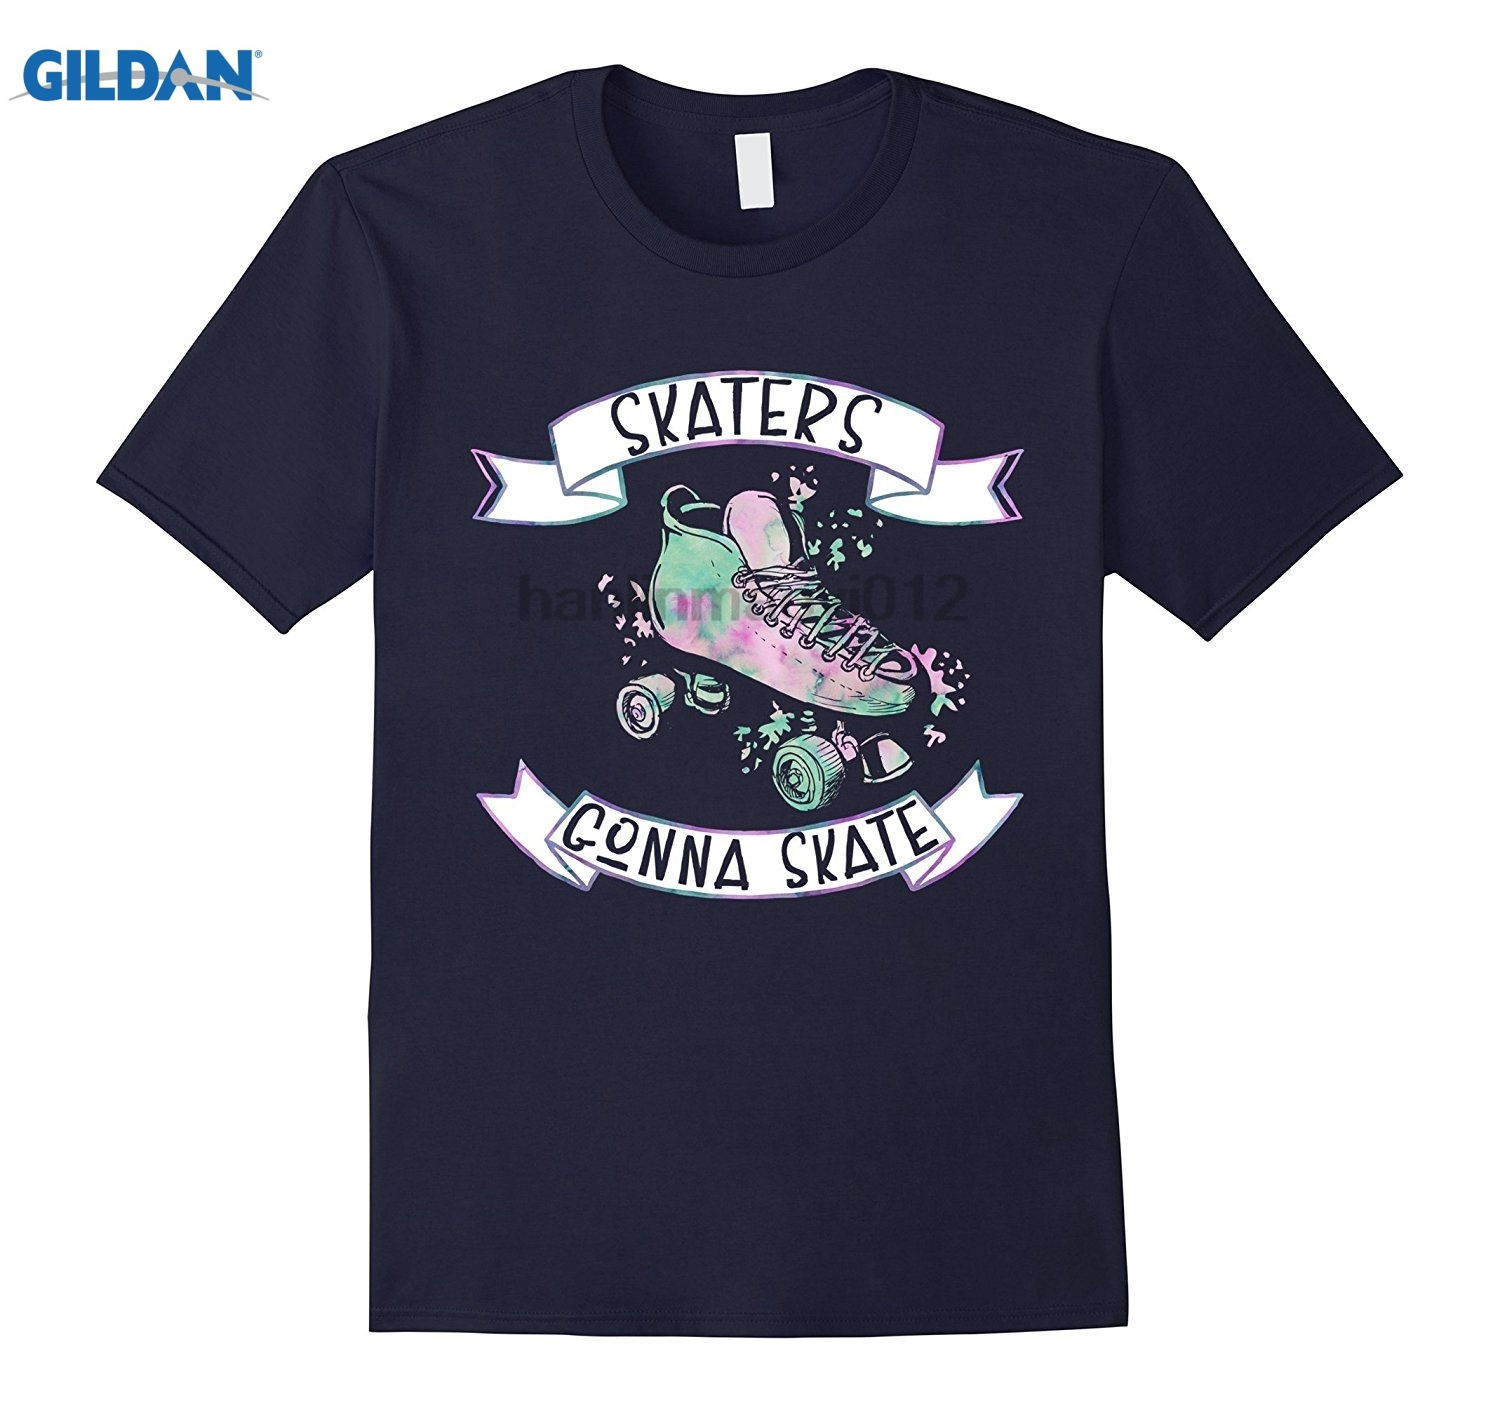 GILDAN Skaters Gonna Skate-Cute Roller Derby Roller Skating T-Shirt sunglasses women T-s ...